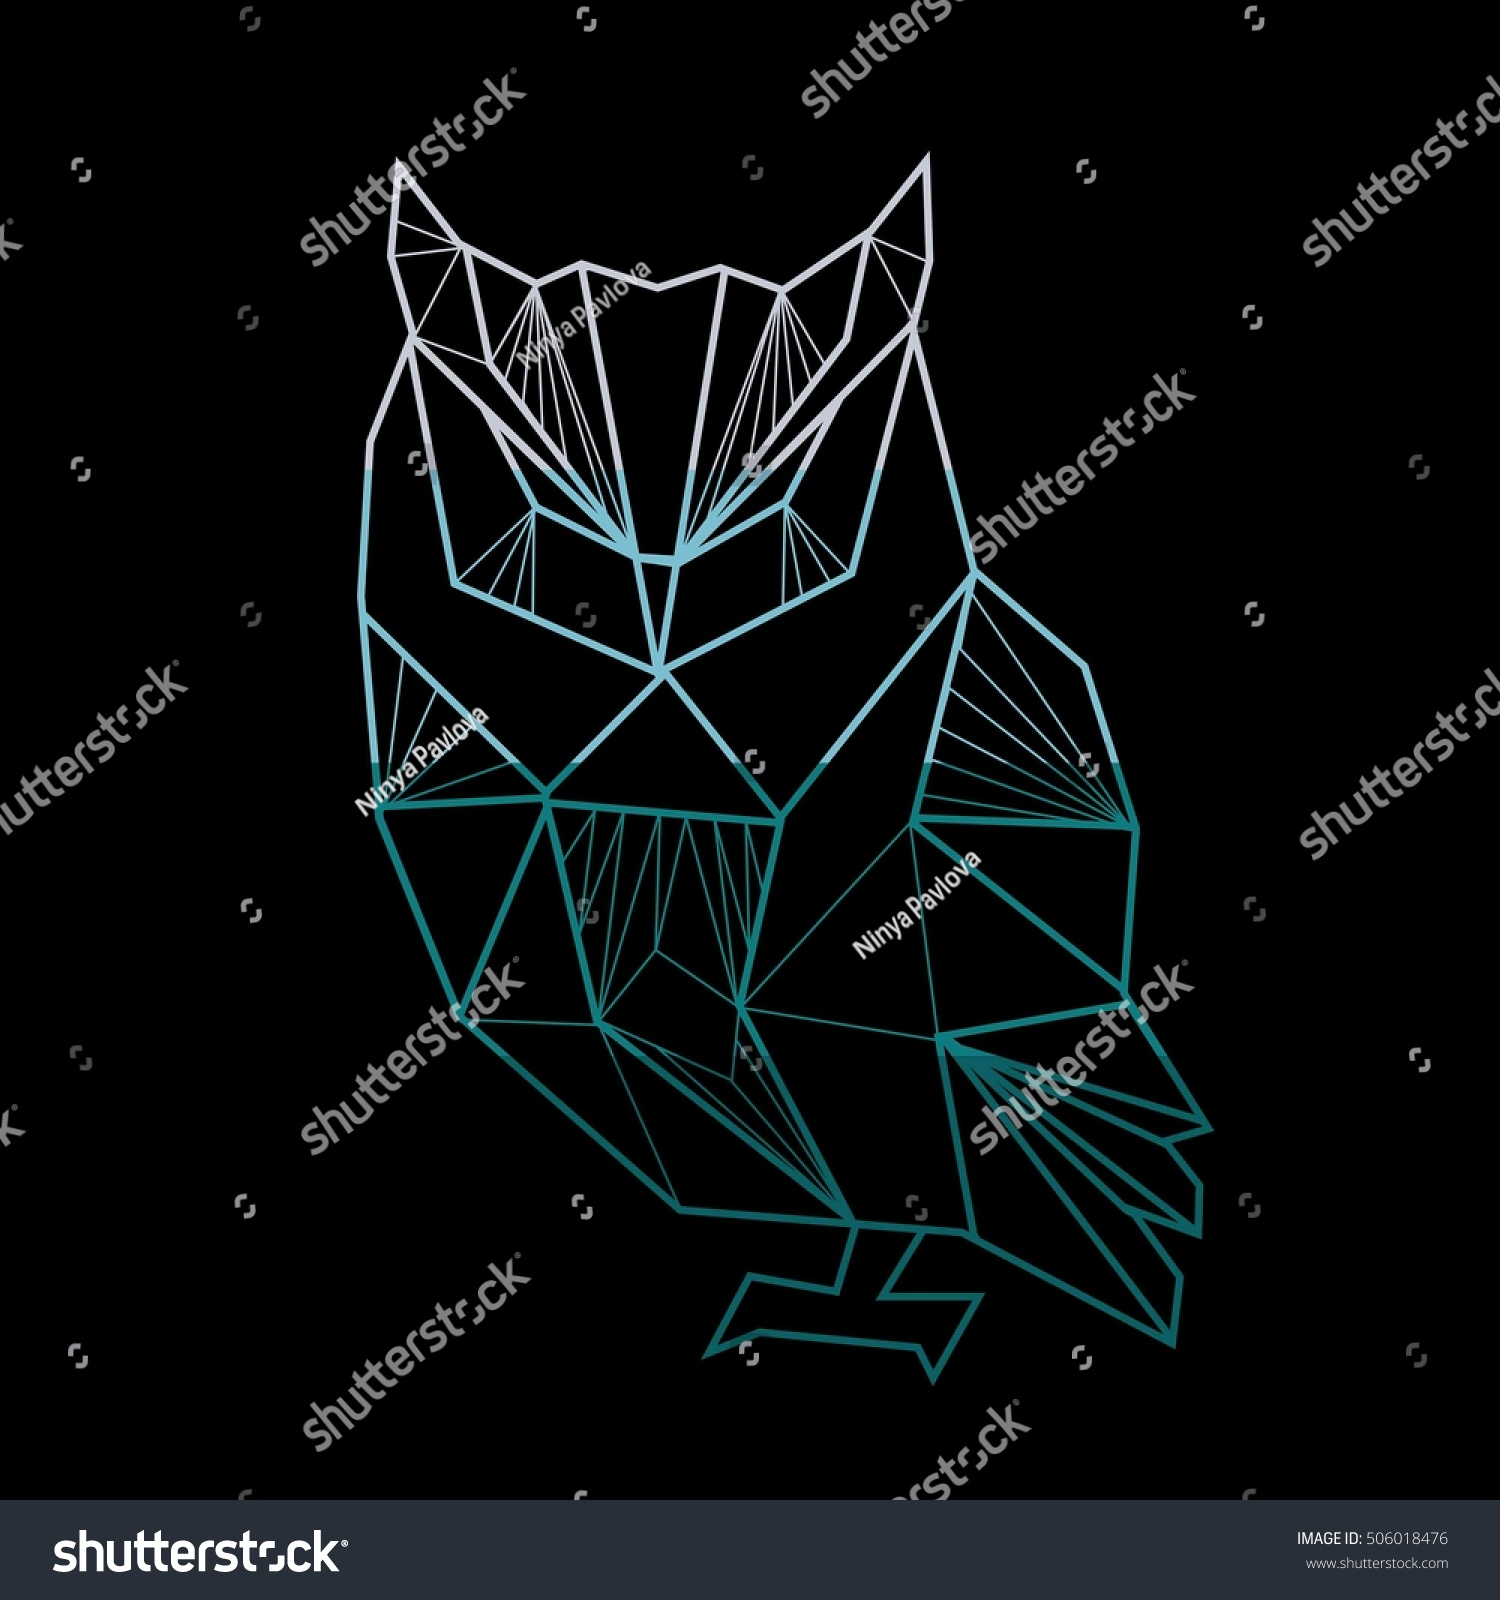 Vector Polygonal Illustration Geometric Owl Gradient Stock ... - photo#21